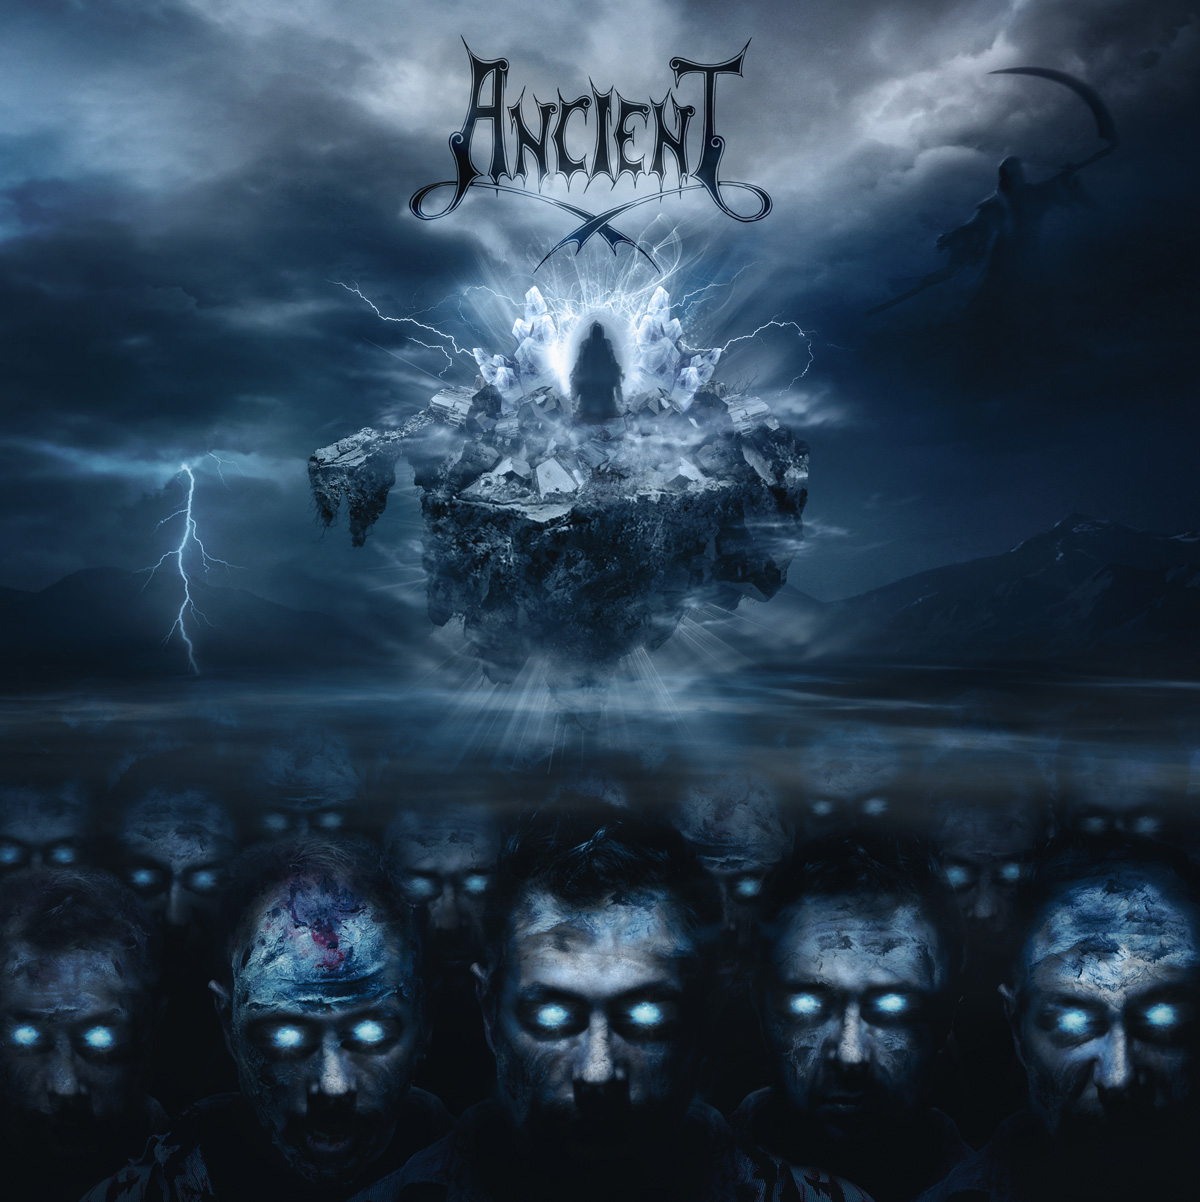 MAD13 creative room Artwork-Ancient-BTTLOTD-cover Ancient, Back to the Land of the Dead